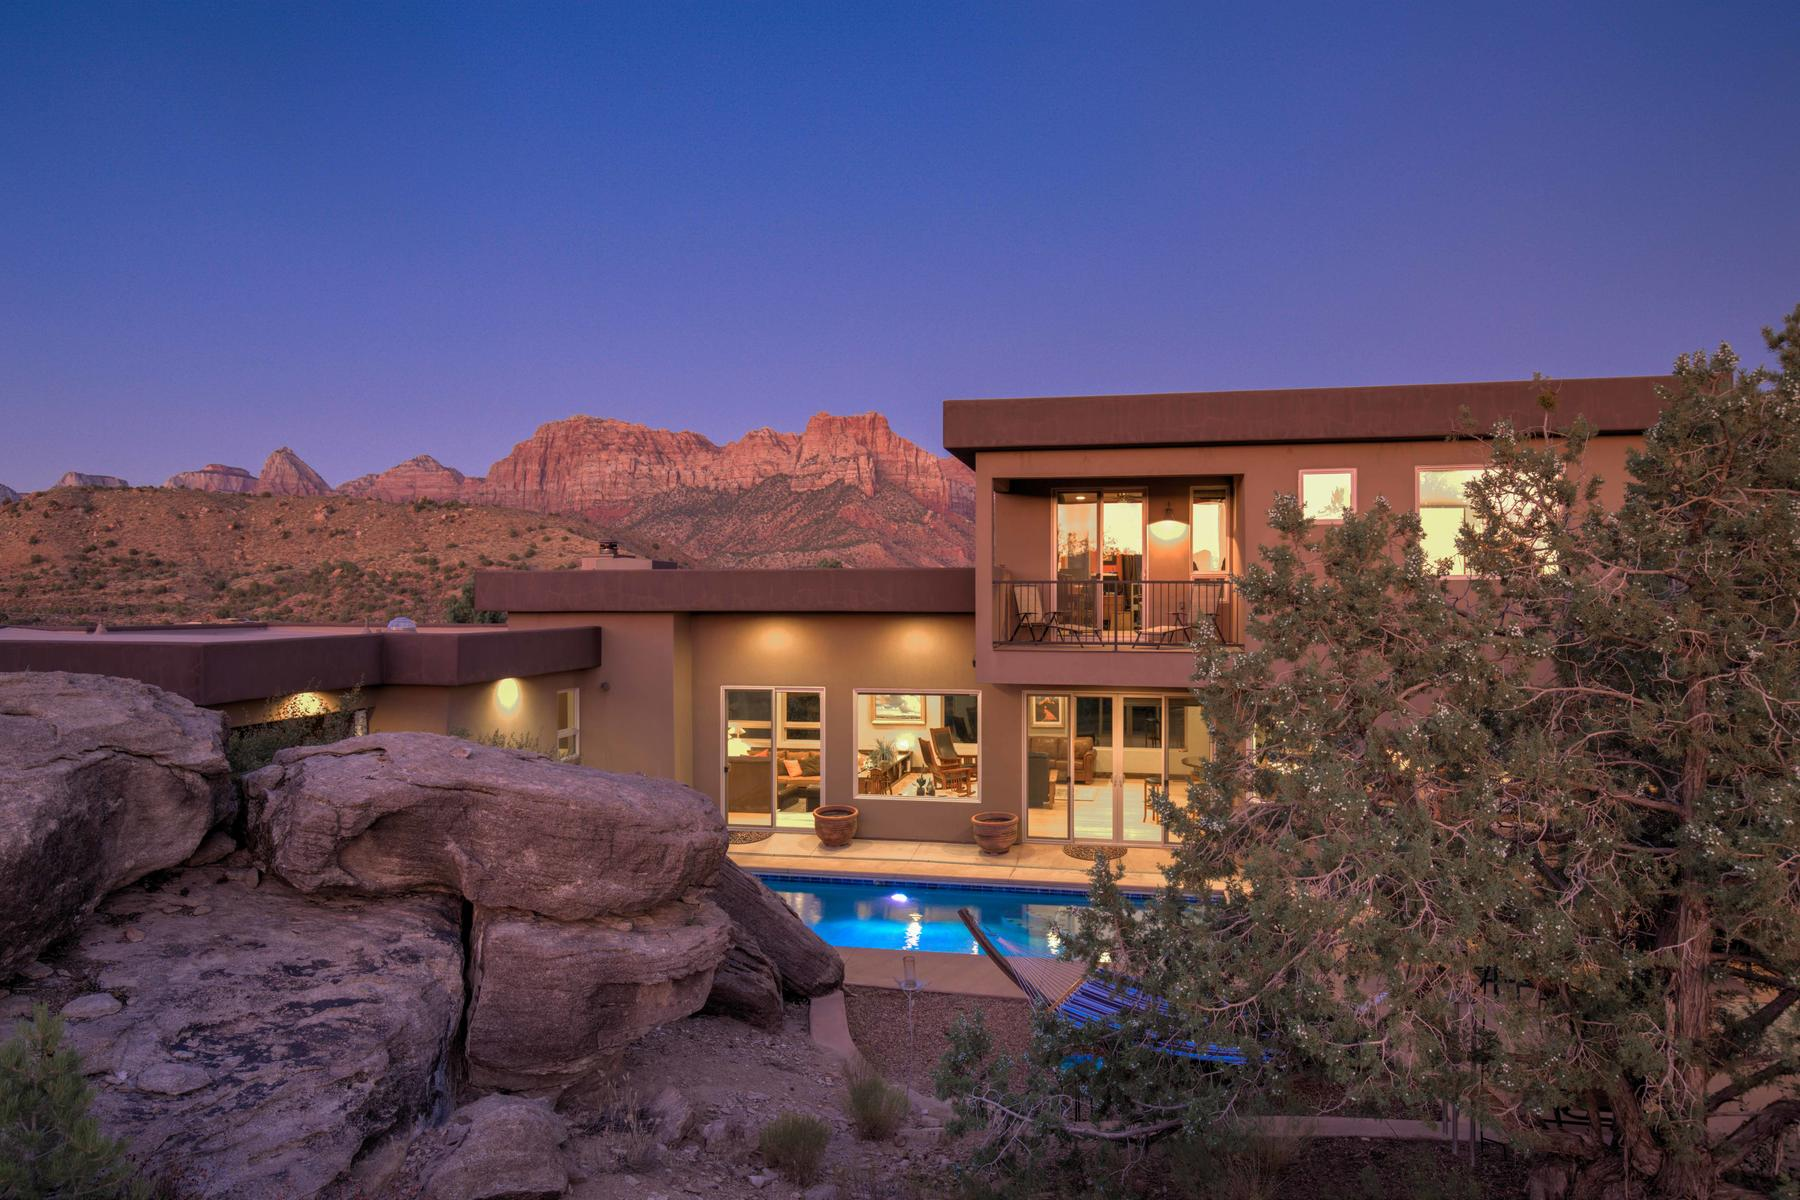 Single Family Homes for Sale at This Home in Zion Has it ALL! 2561 Anasazi Way Springdale, Utah 84767 United States